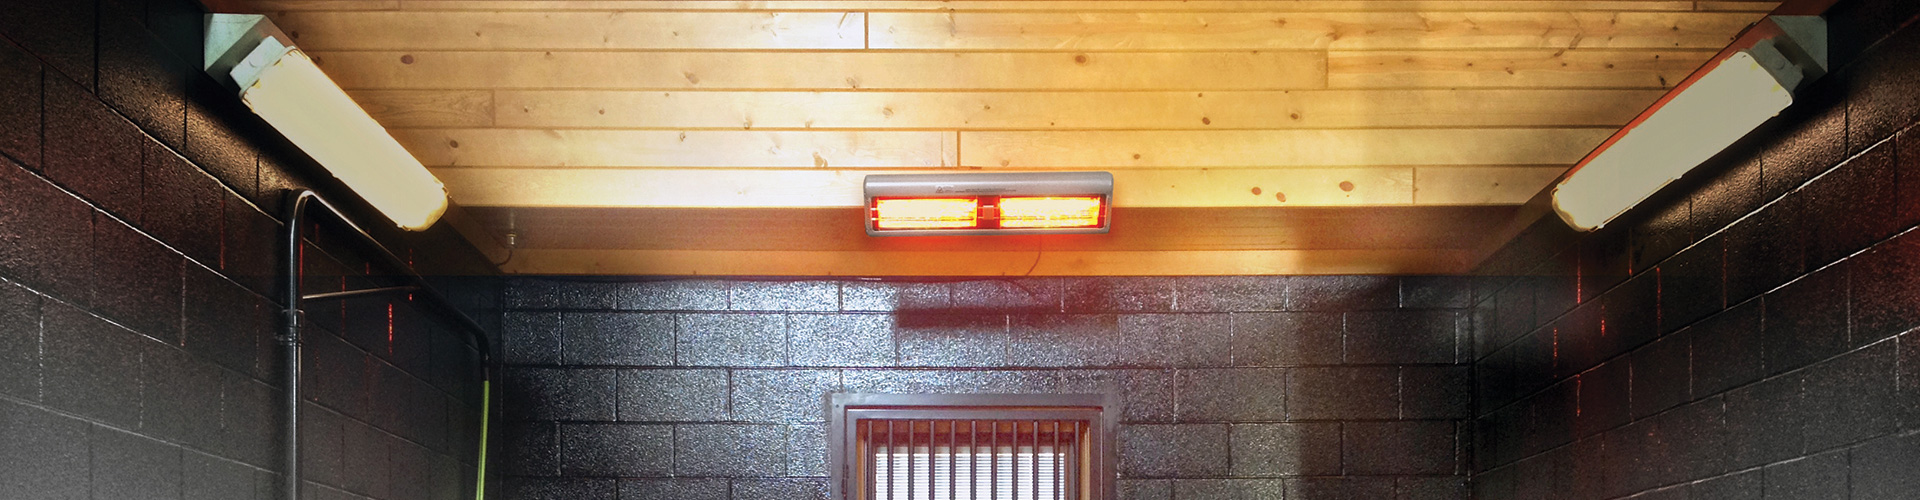 Heating, Lighting, and Ventilation